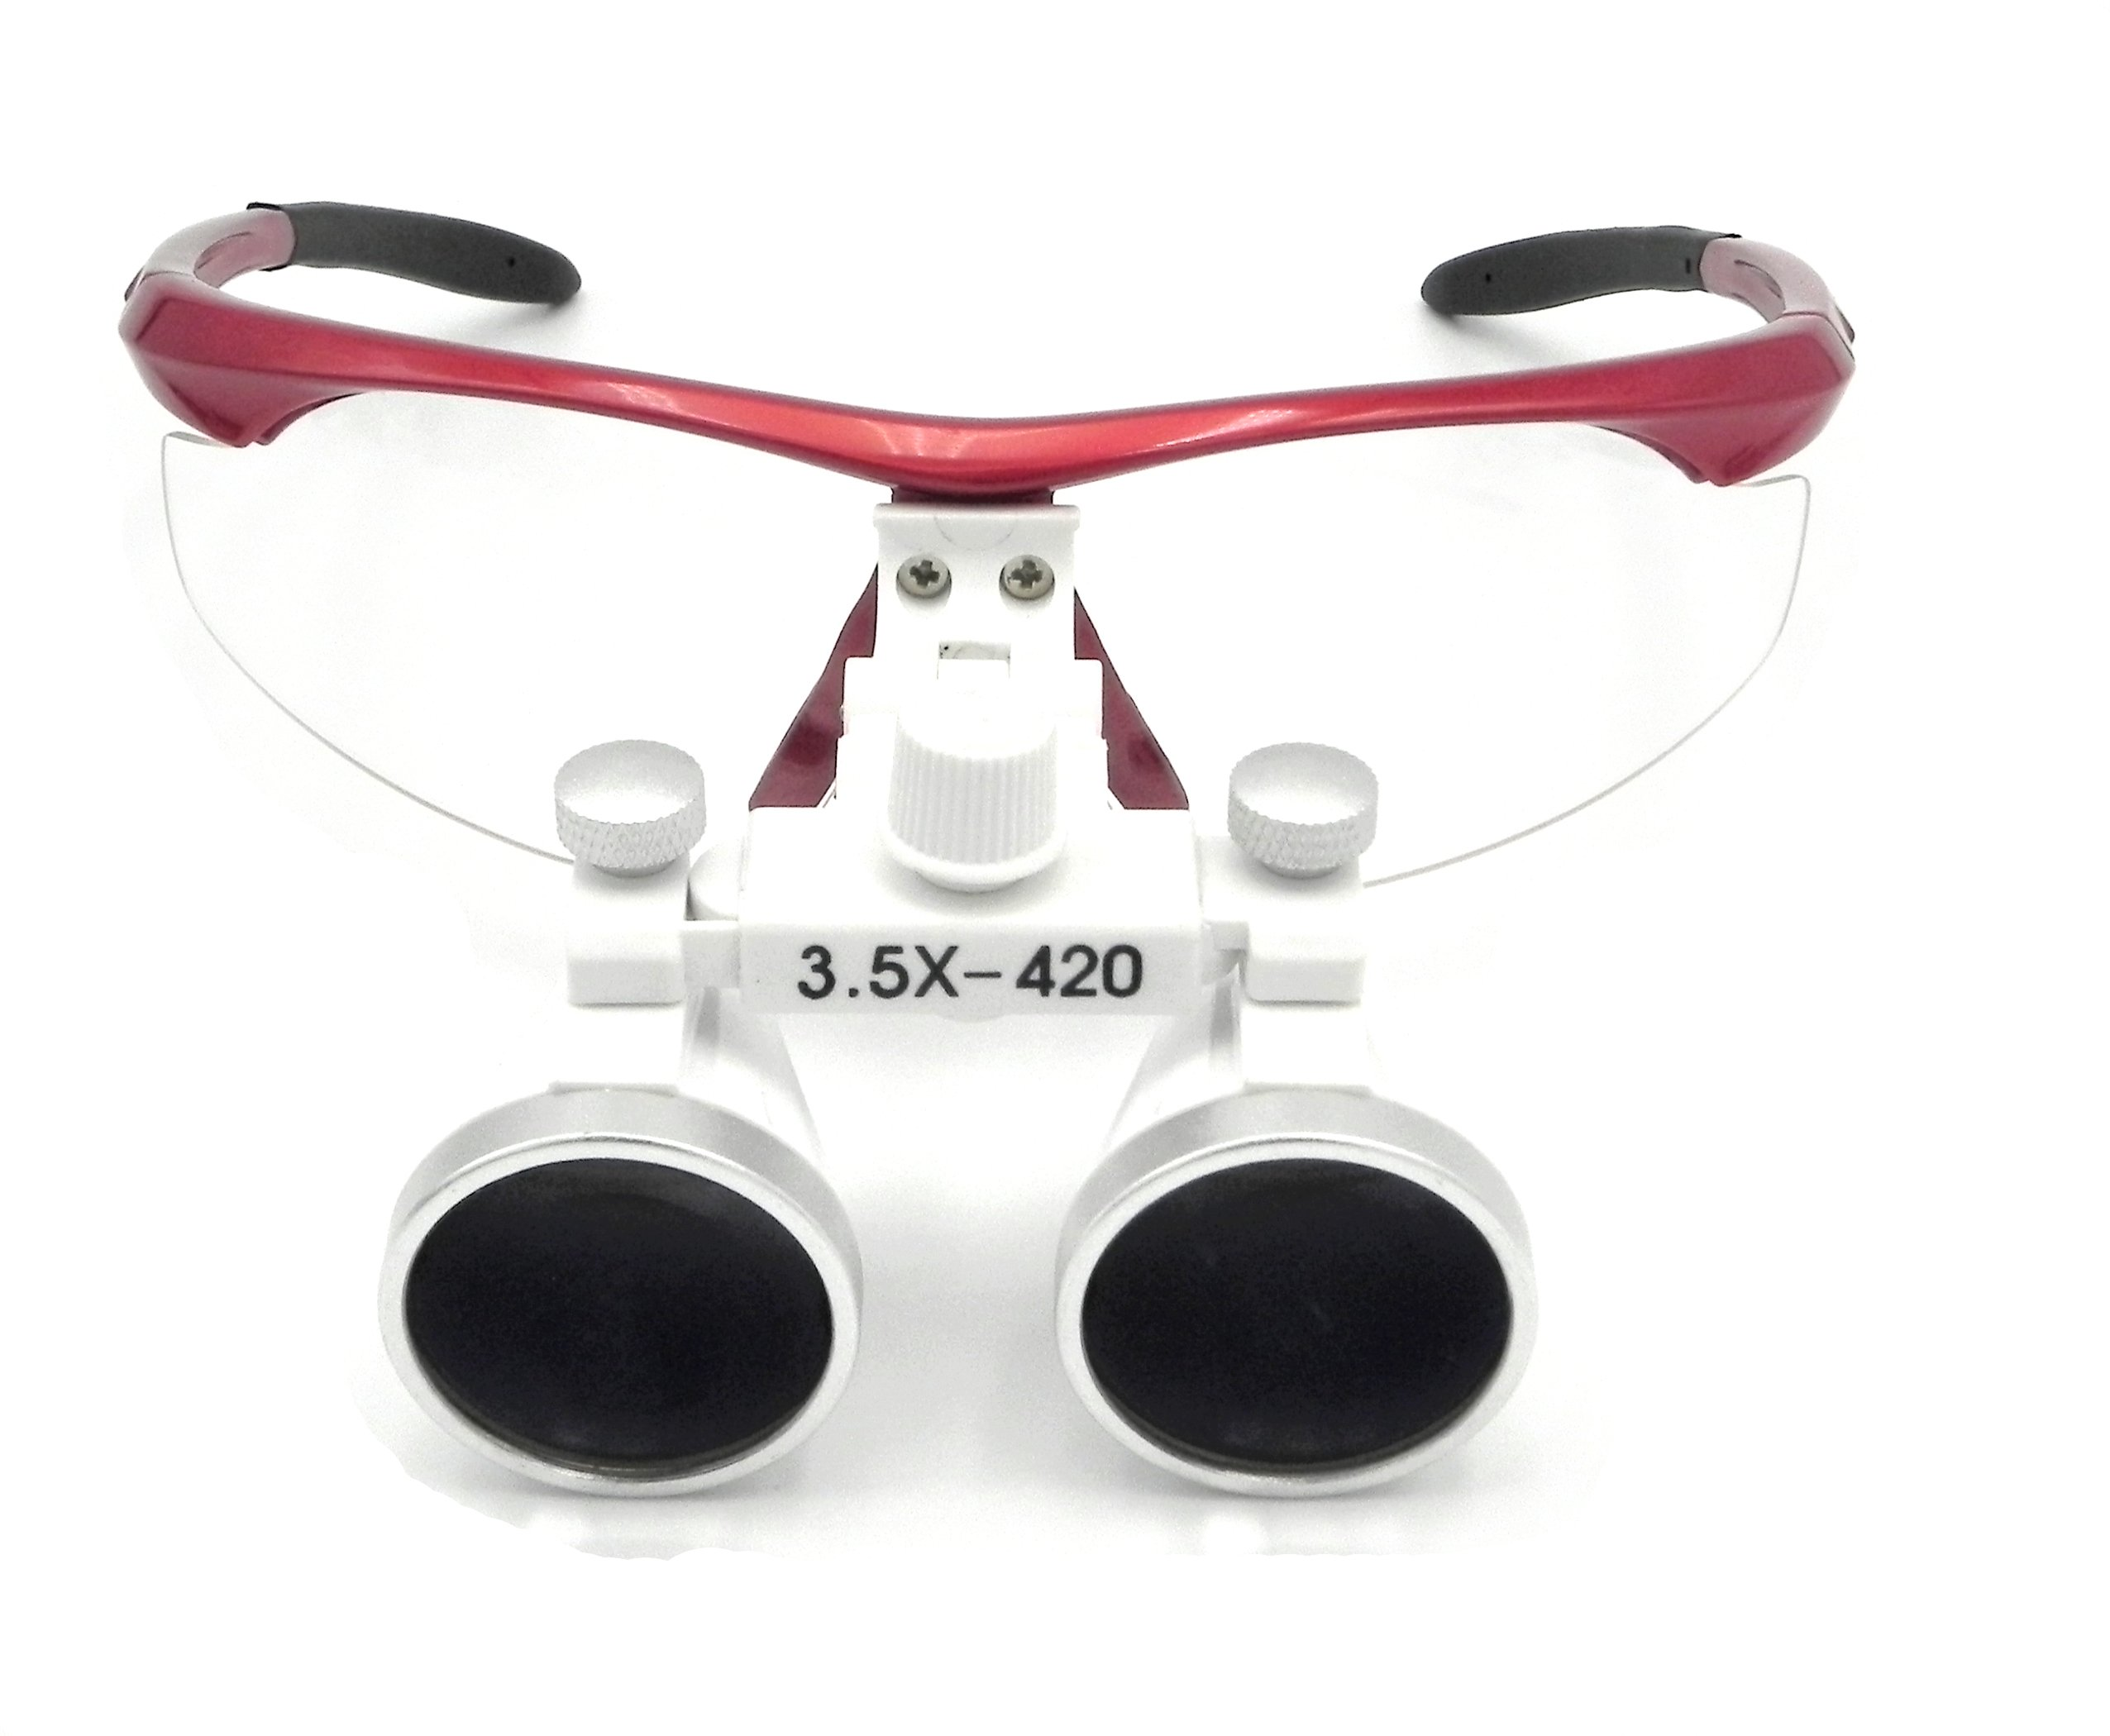 High Quality Dental Surgical Binocular Loupes Optical Glass Loupe 3.5X420mm with LED Head Light Lamp (Red)